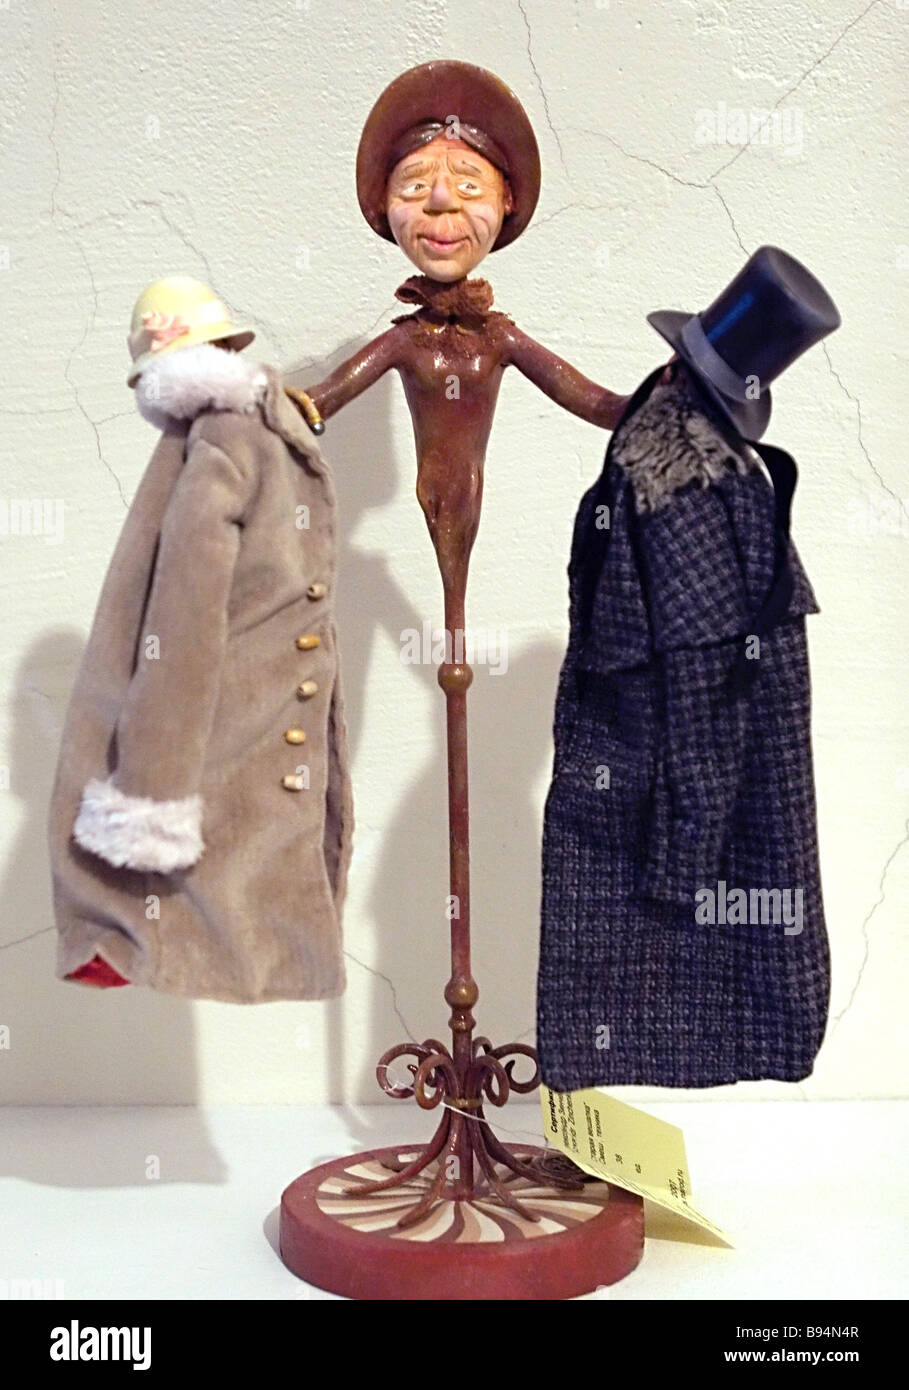 Old Hanger an item displayed at the exhibition Circumlocution of the Russian Language in the Puppet Gallery St Petersburg - Stock Image